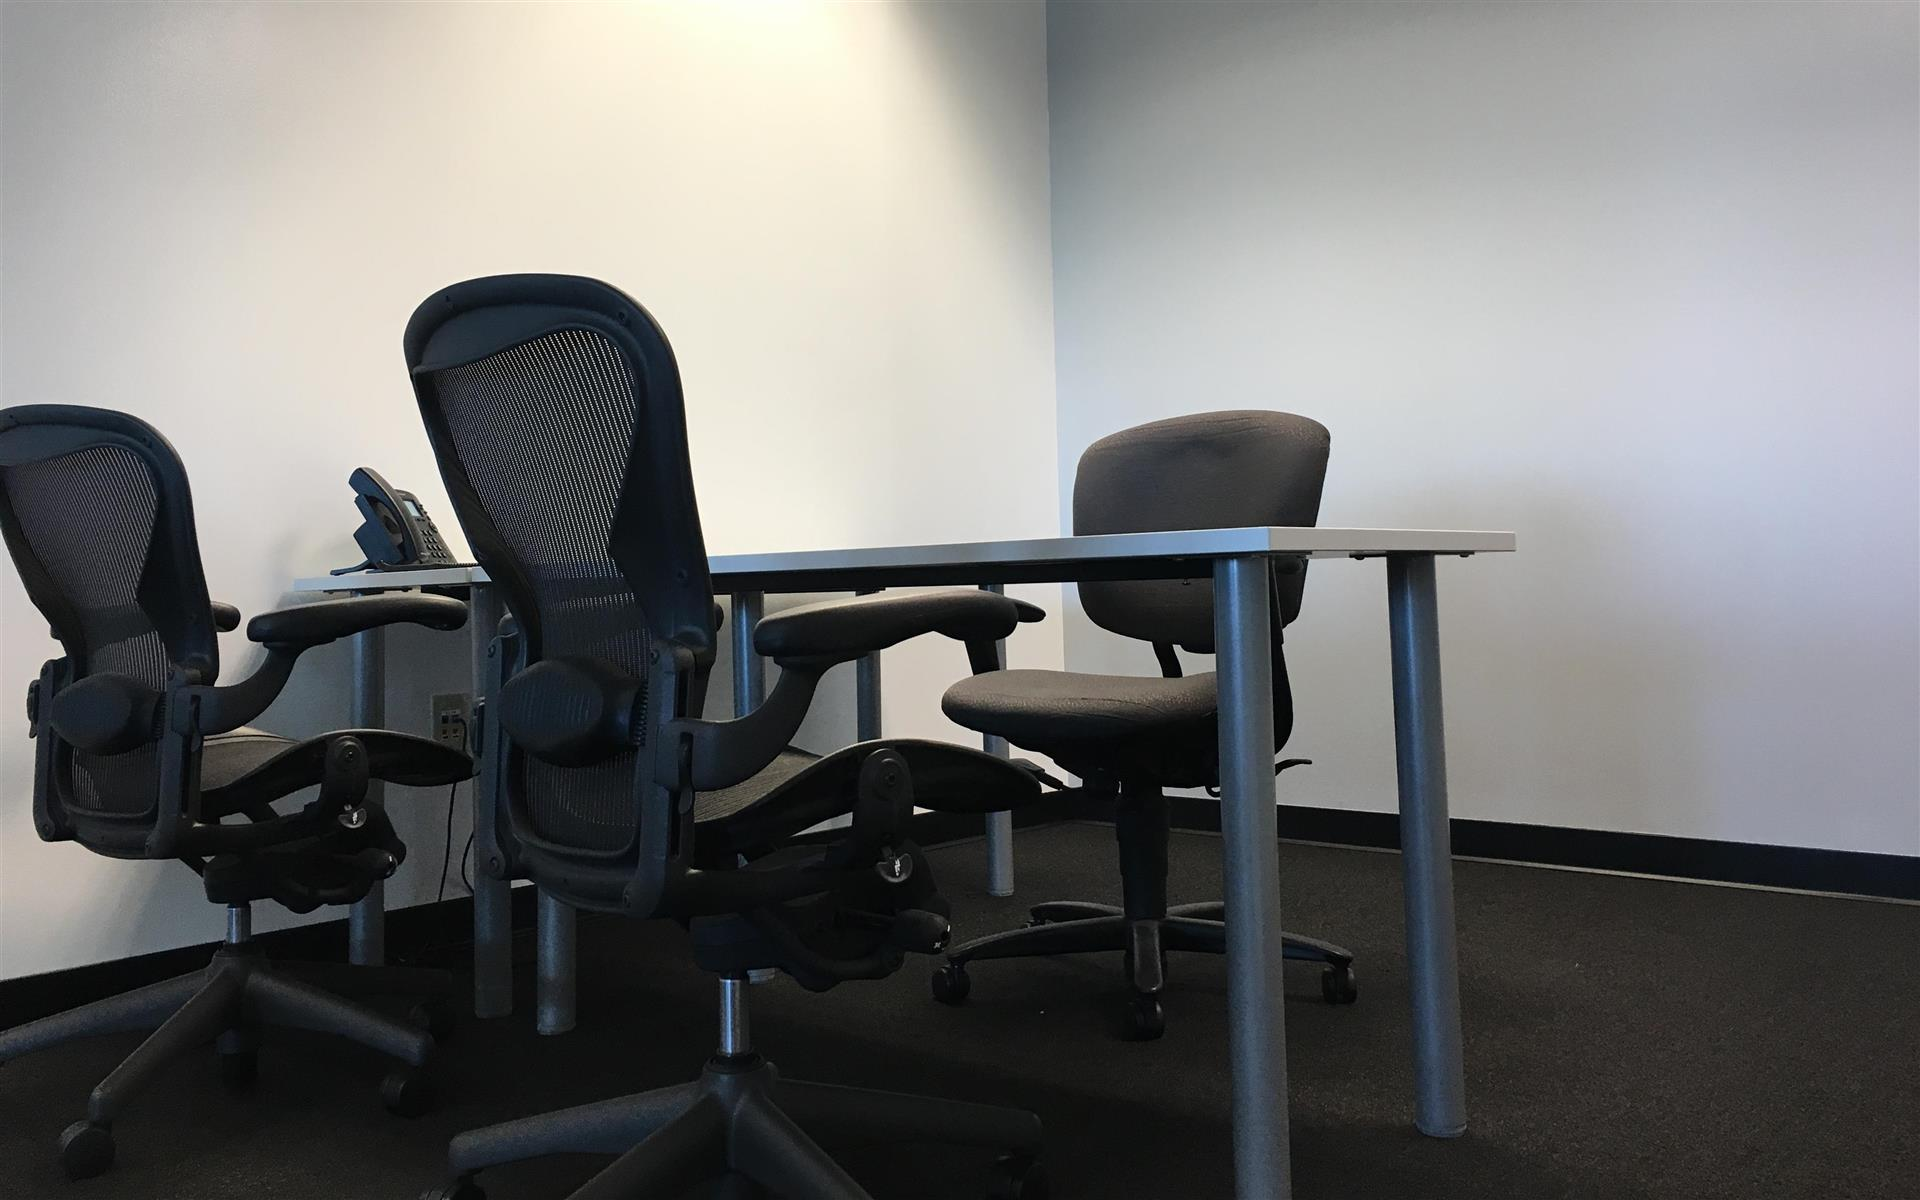 FinPro Solutions - Your New Private Office for 1 - 3 People